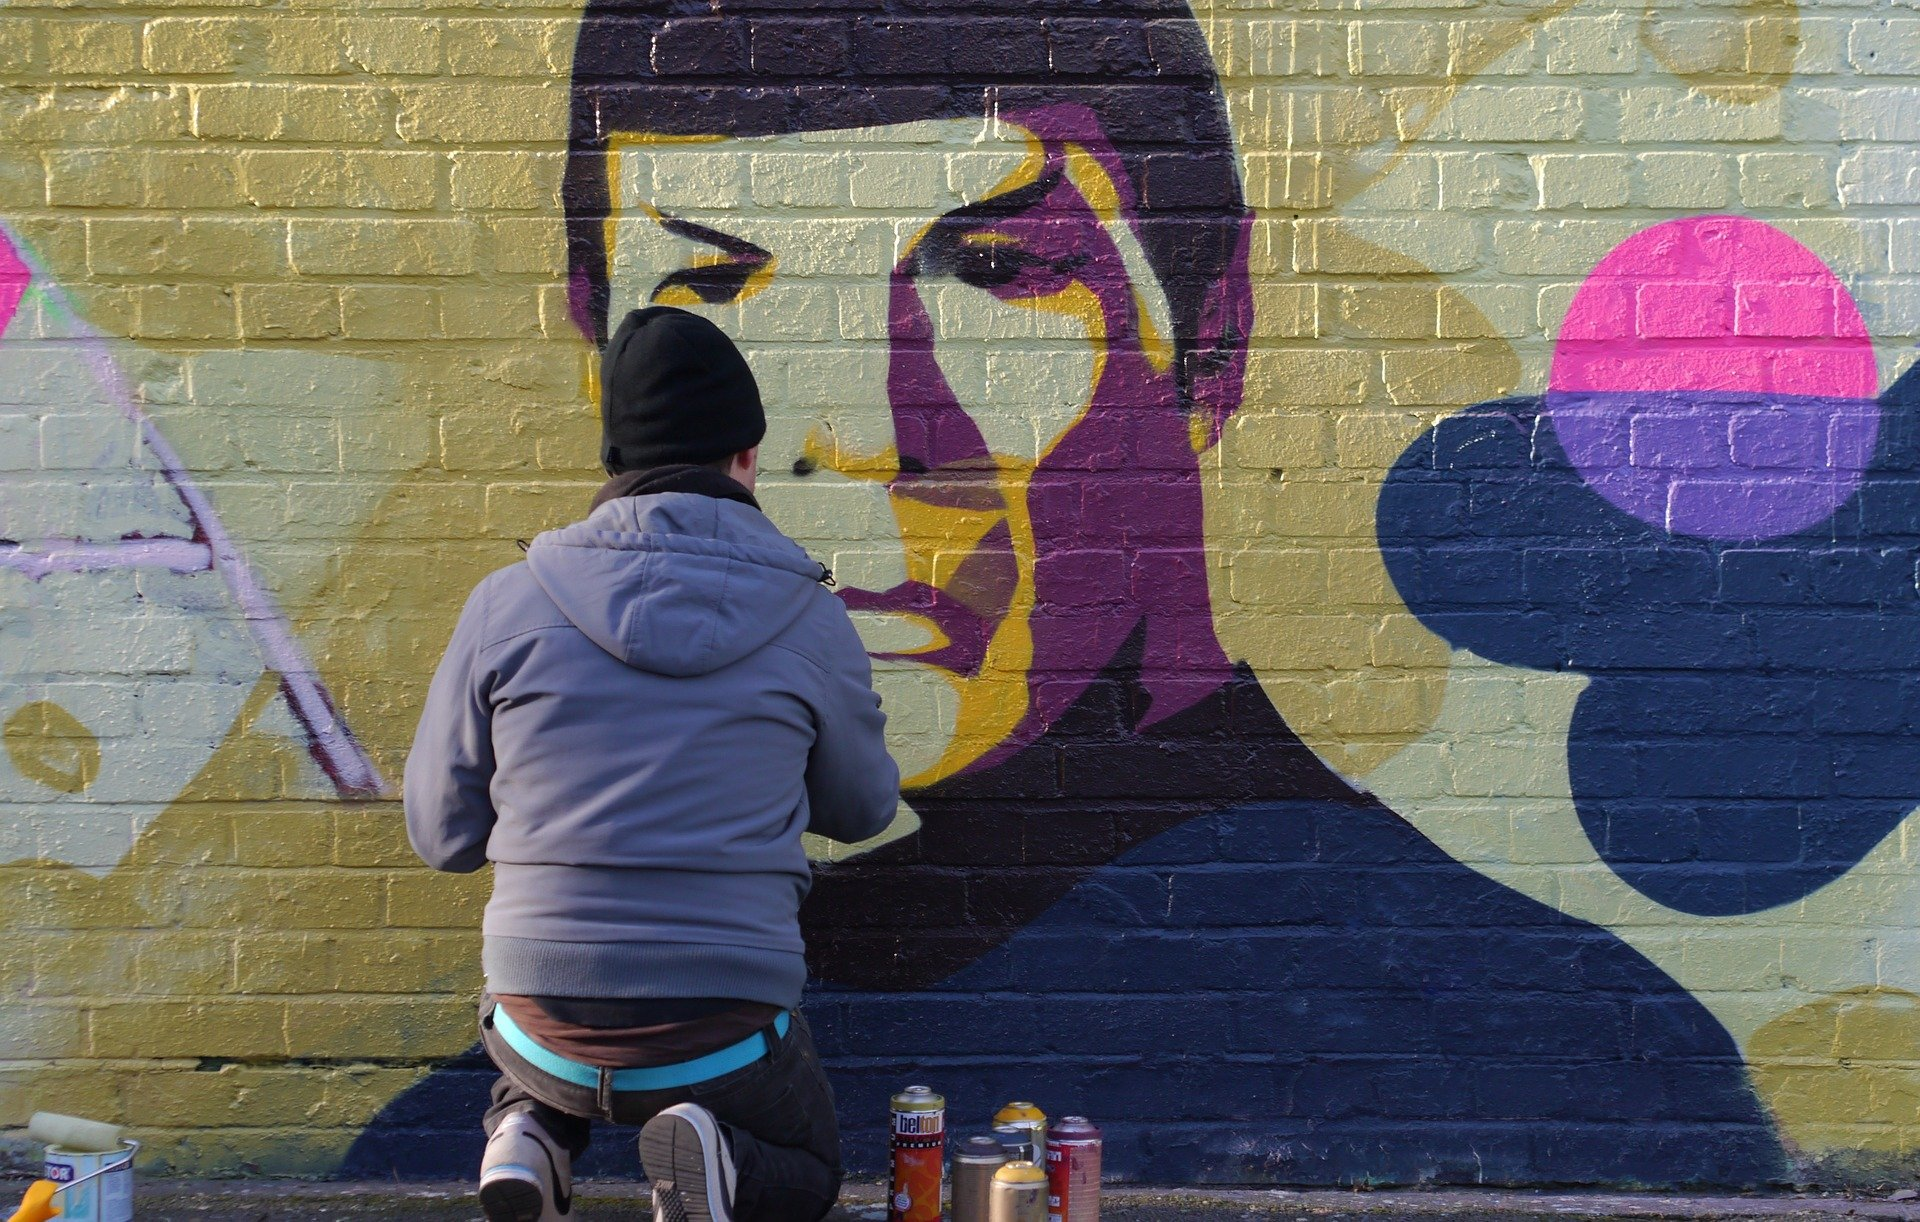 Image of wall art showing Mr Spock from Star Trek